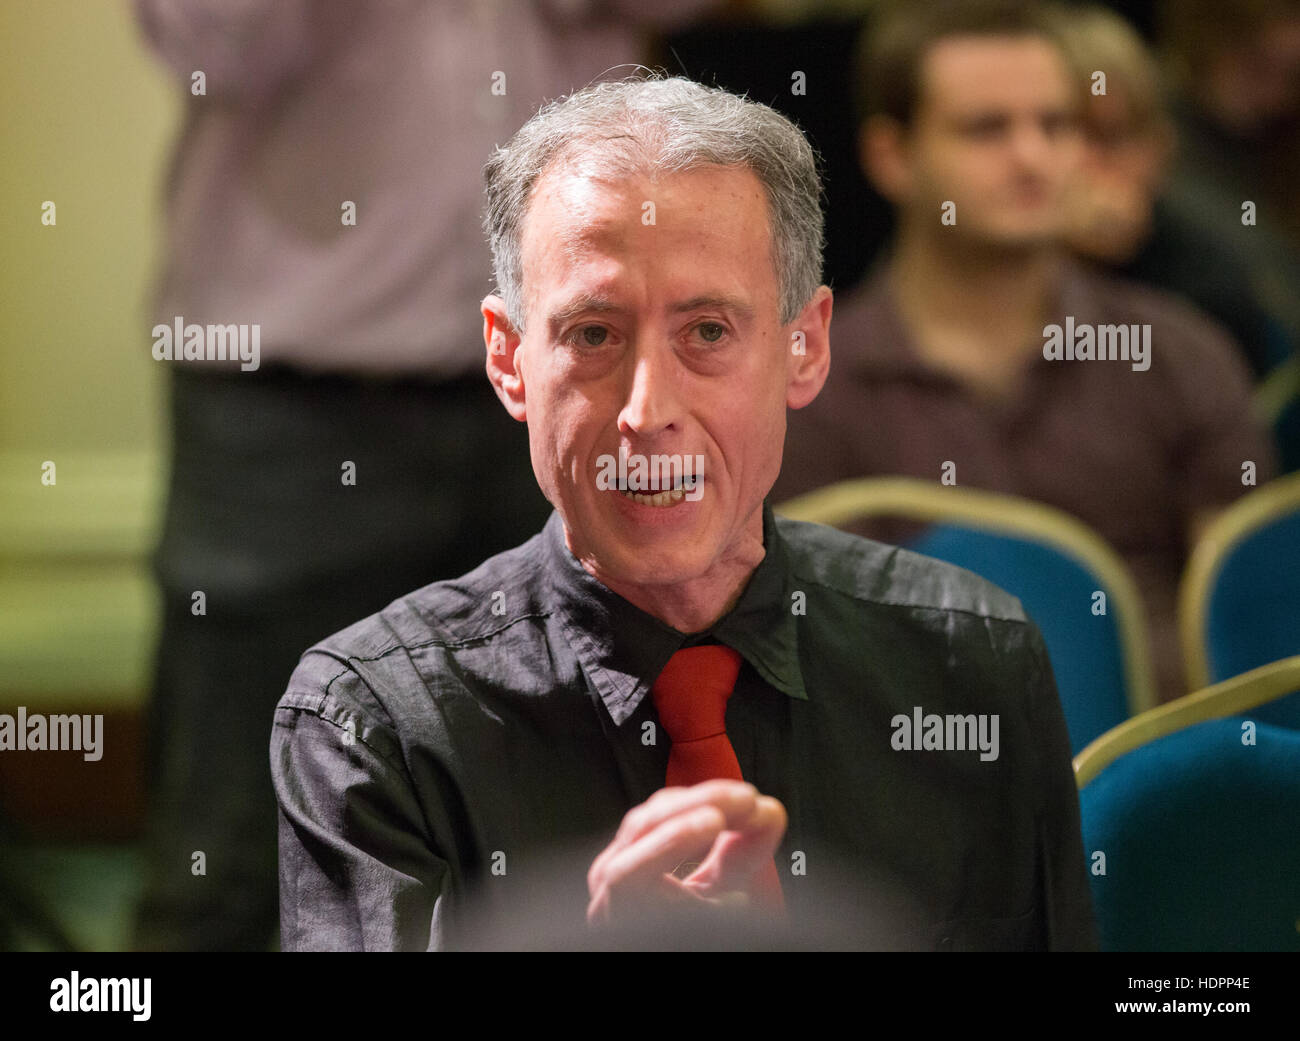 Human rights campaigner,Peter Tatchell,heckles Jeremy Corbyn,during his speech on Human Rights and demands air drops - Stock Image